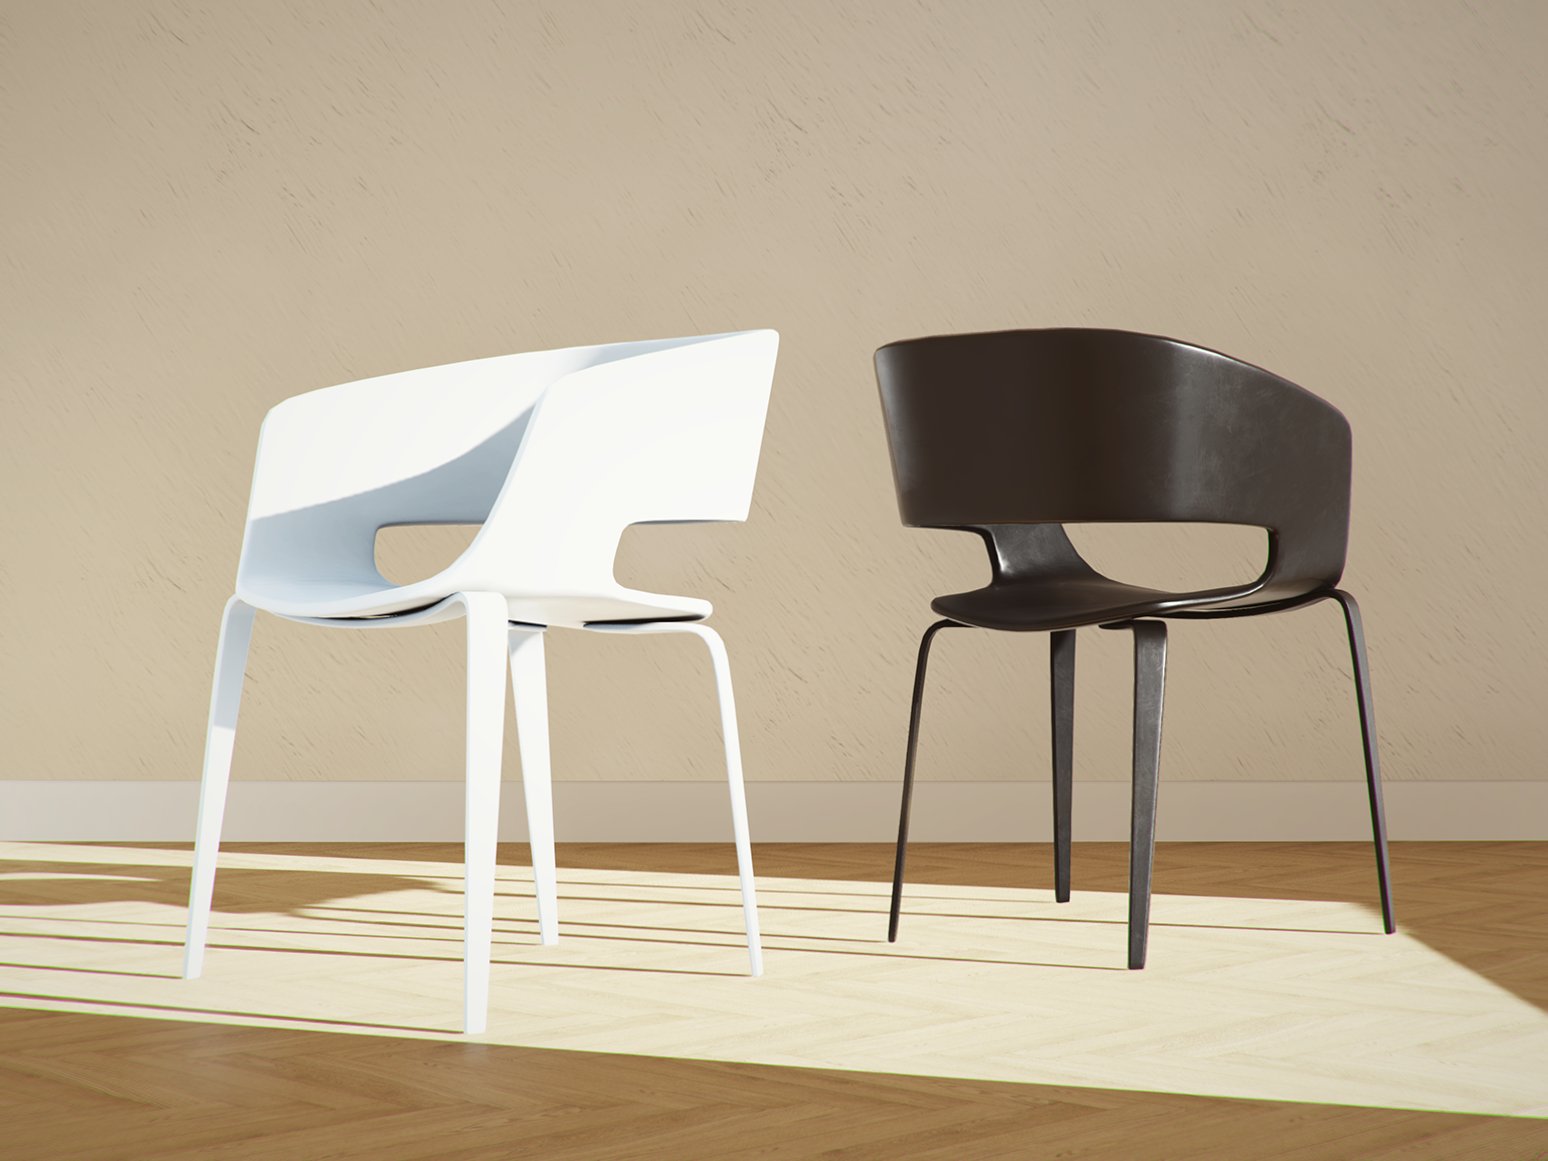 Enlight Furniture - Chair 02